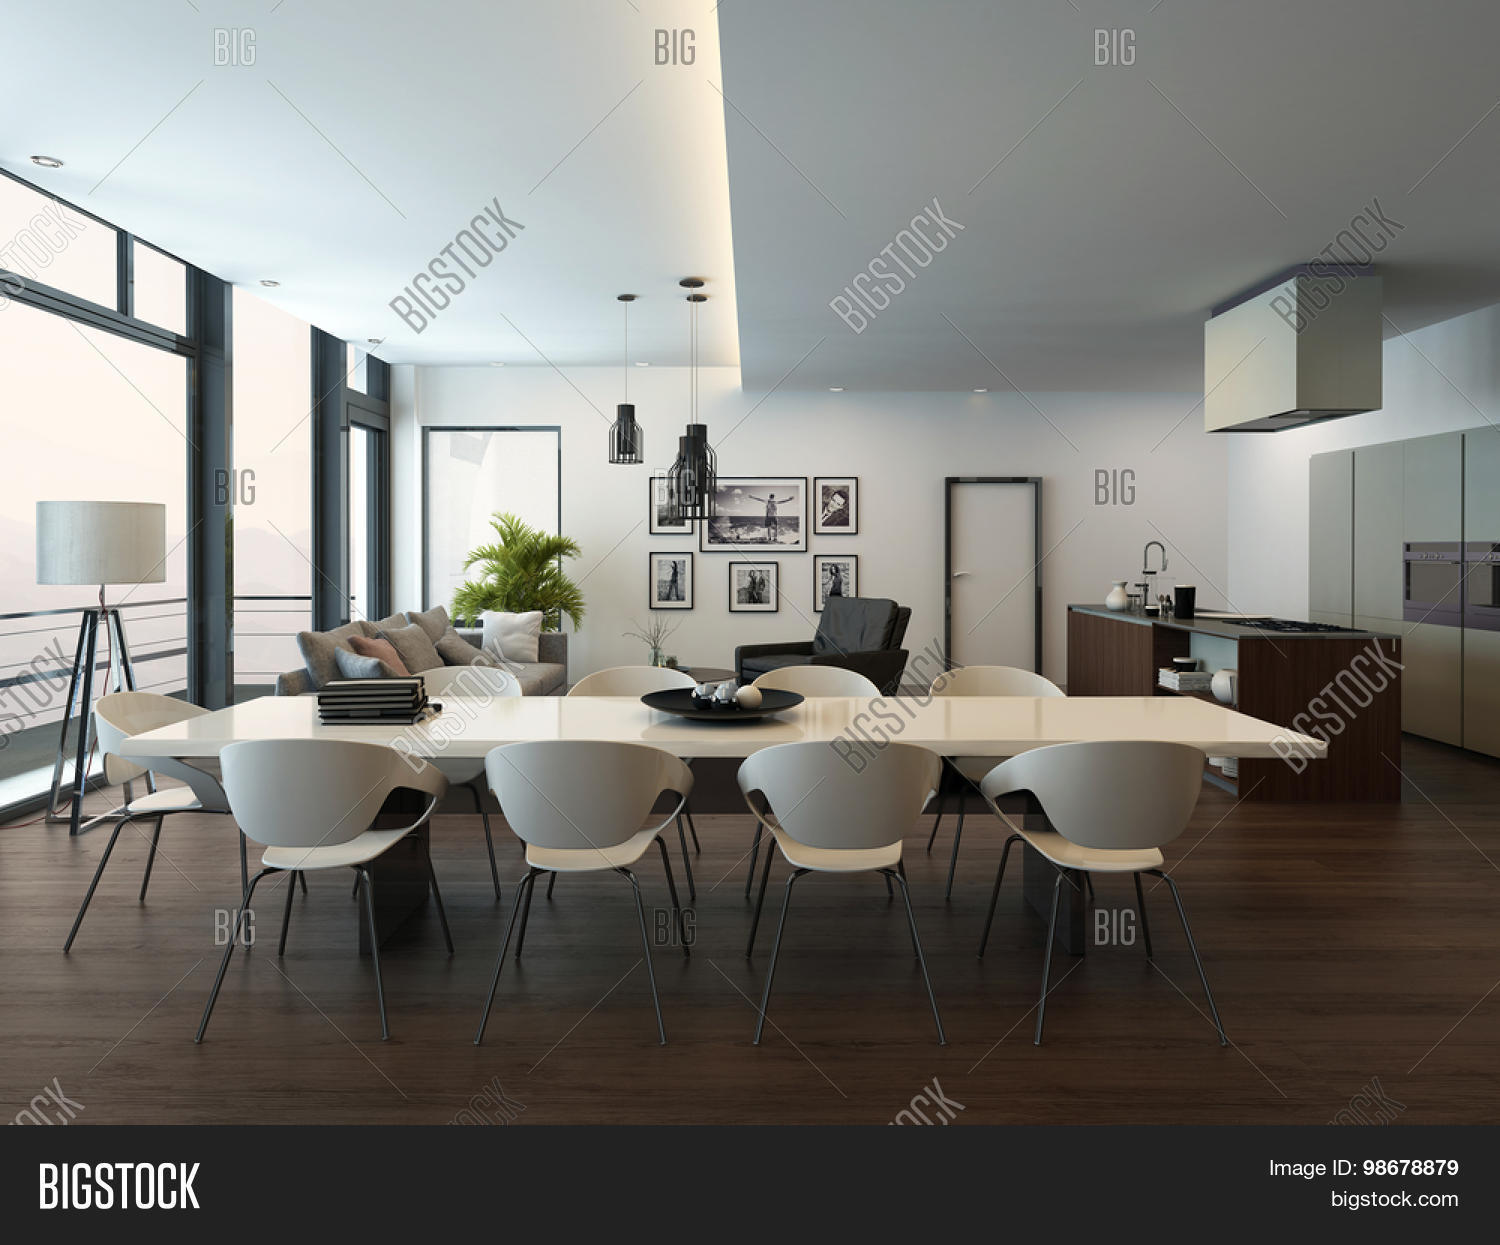 Luxury modern apartment living room image photo bigstock for One big room apartment